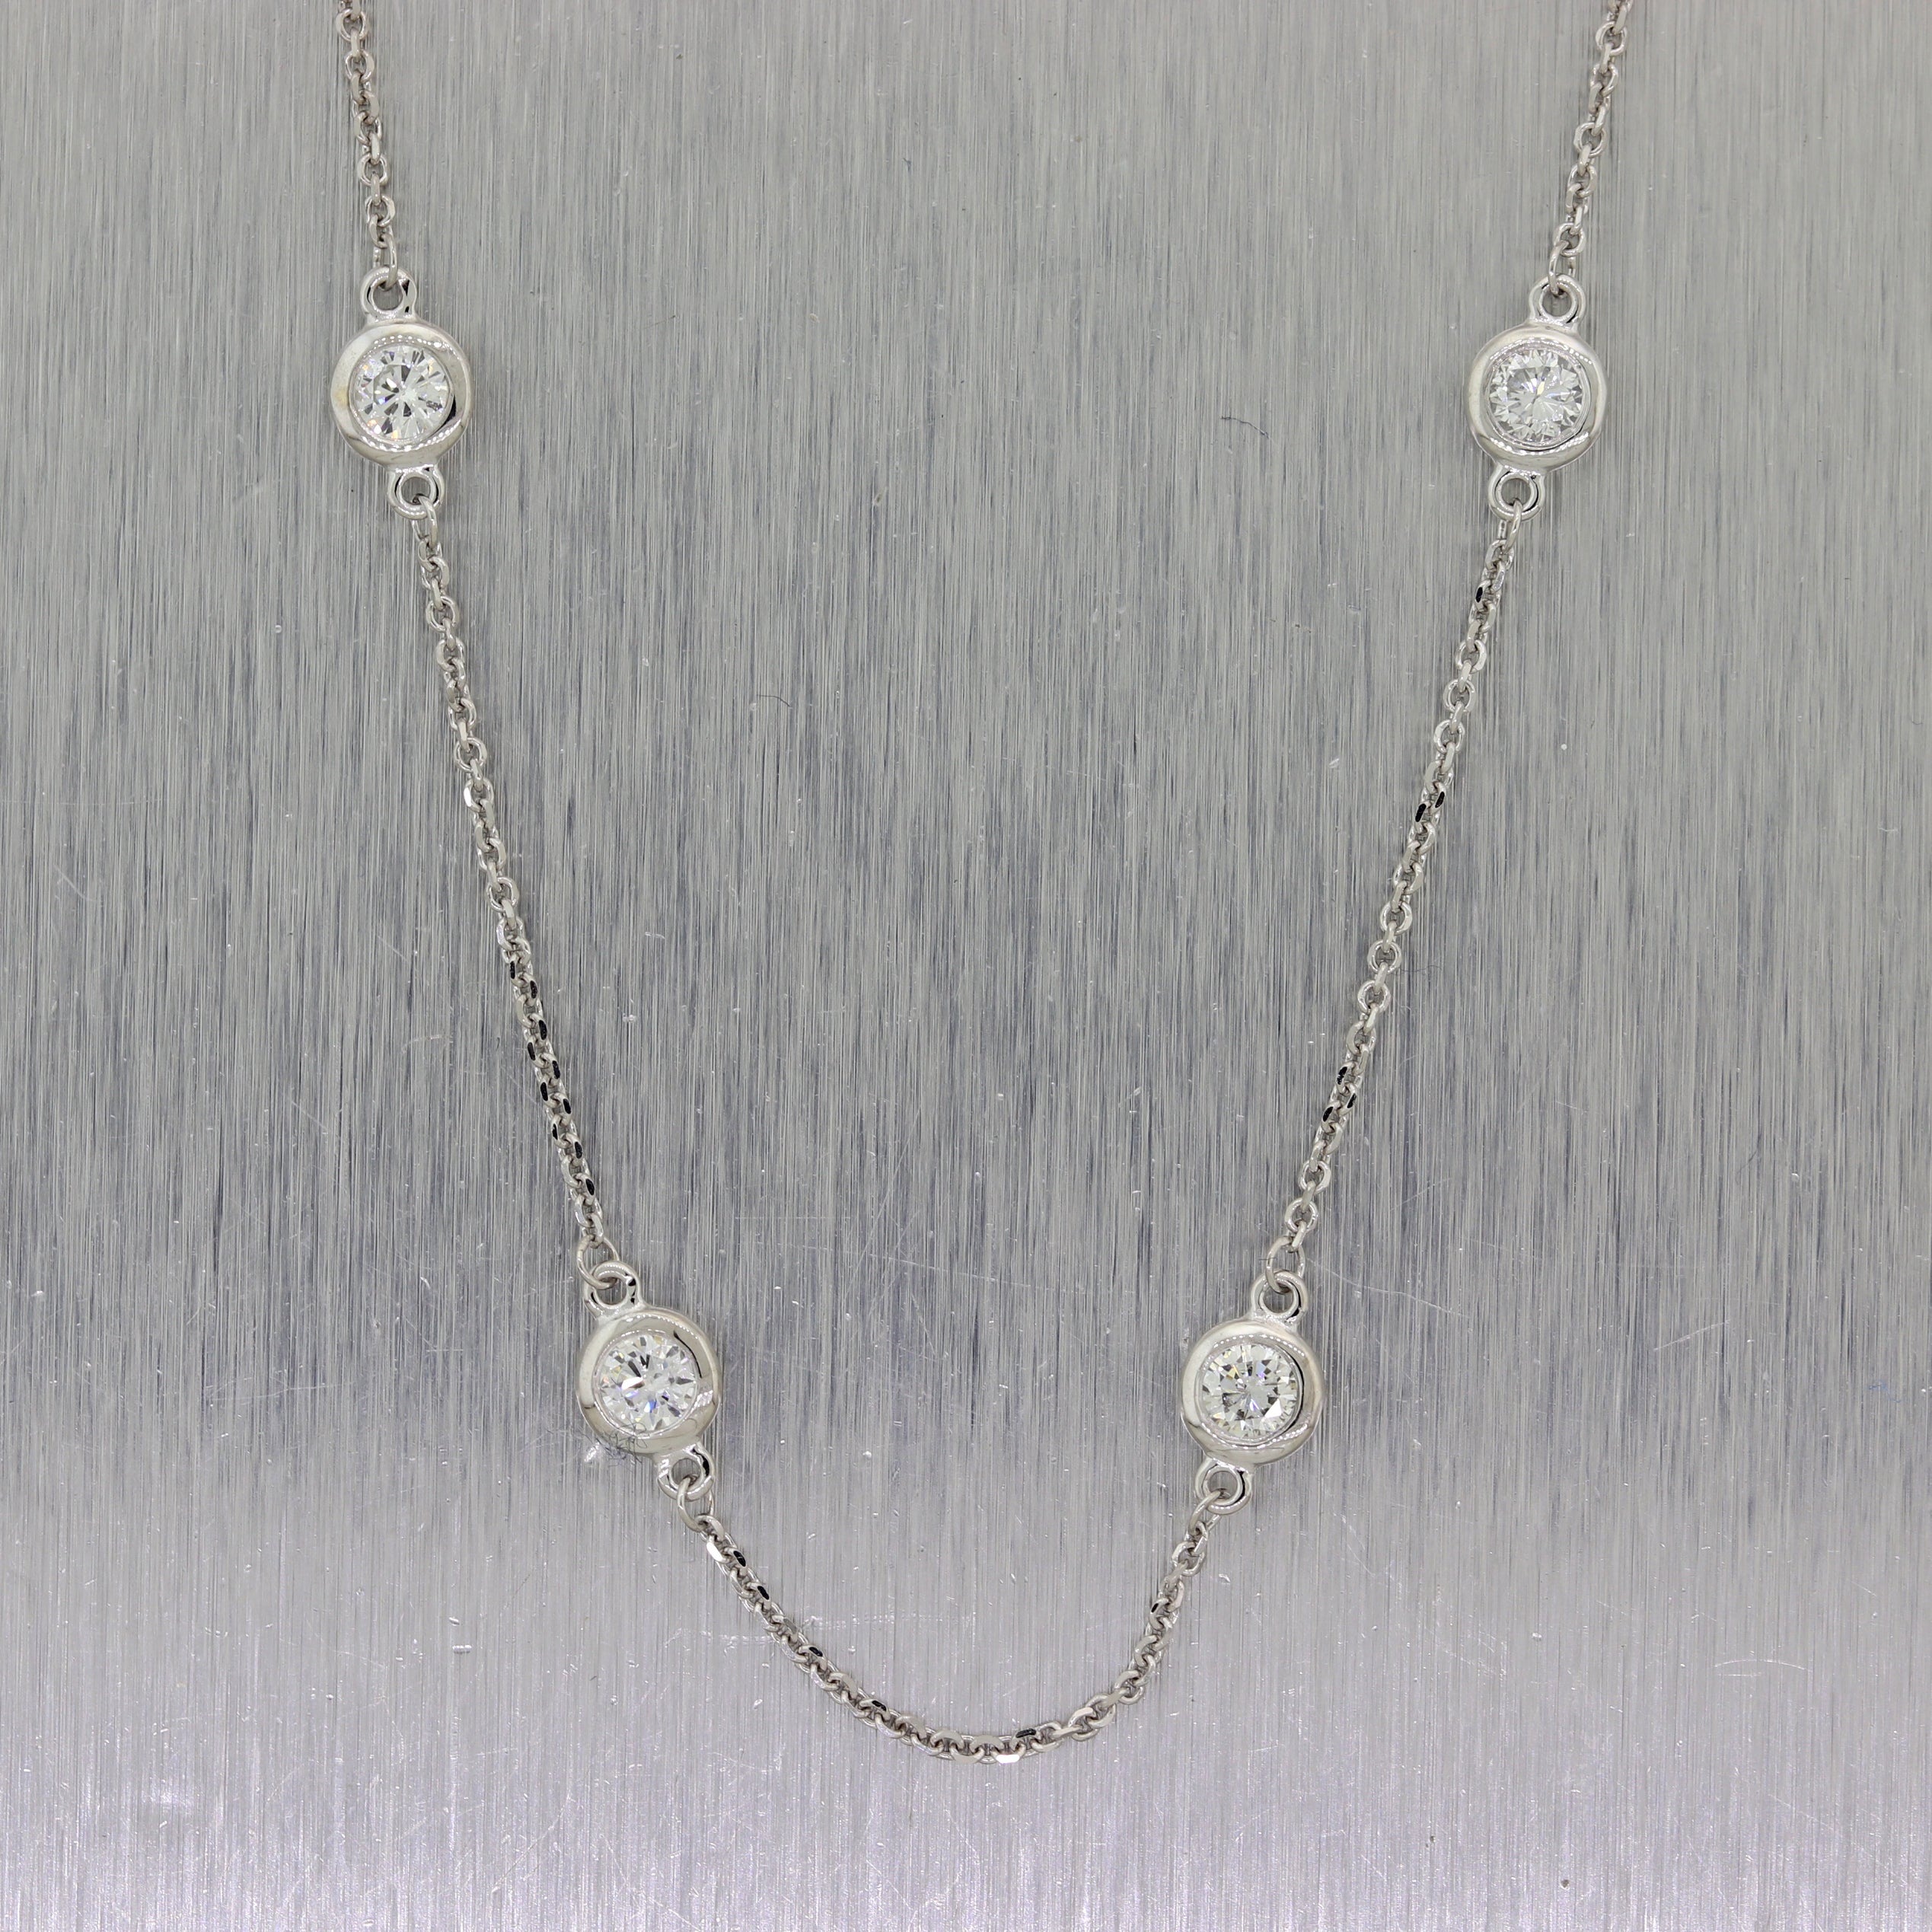 "Modern 14k White Gold 1.42ctw Diamonds By the Yard 18"" Necklace"